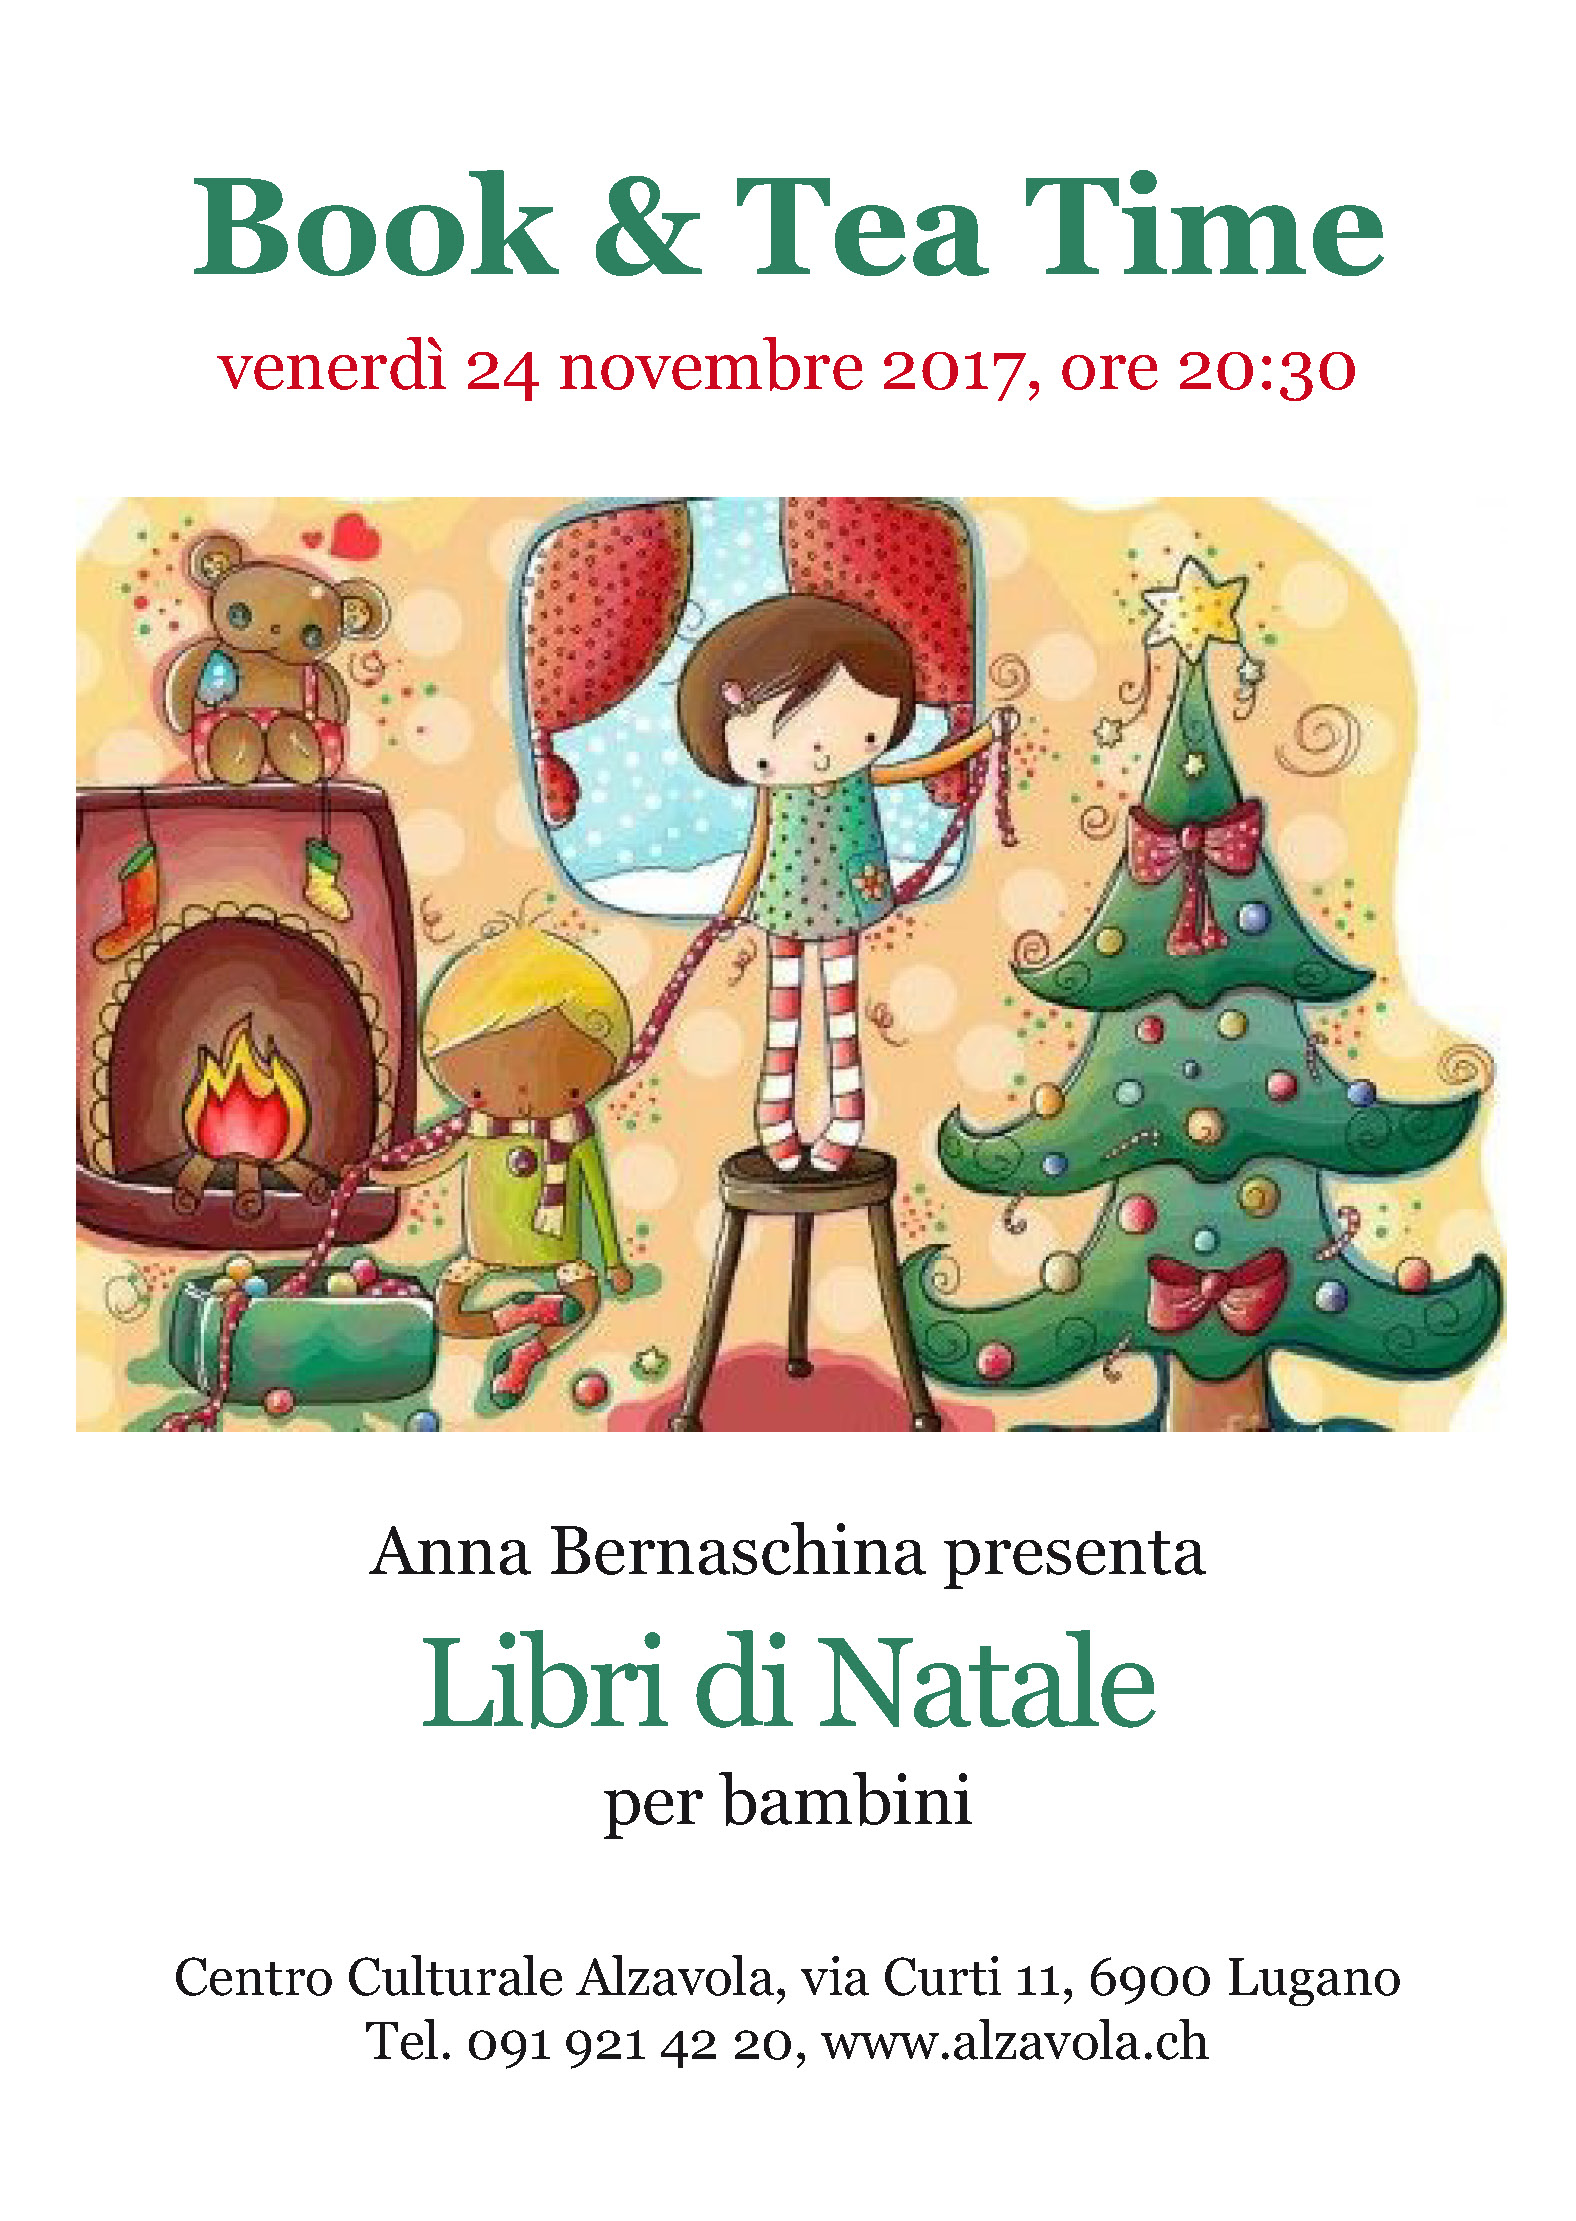 BookTeaTime 2017